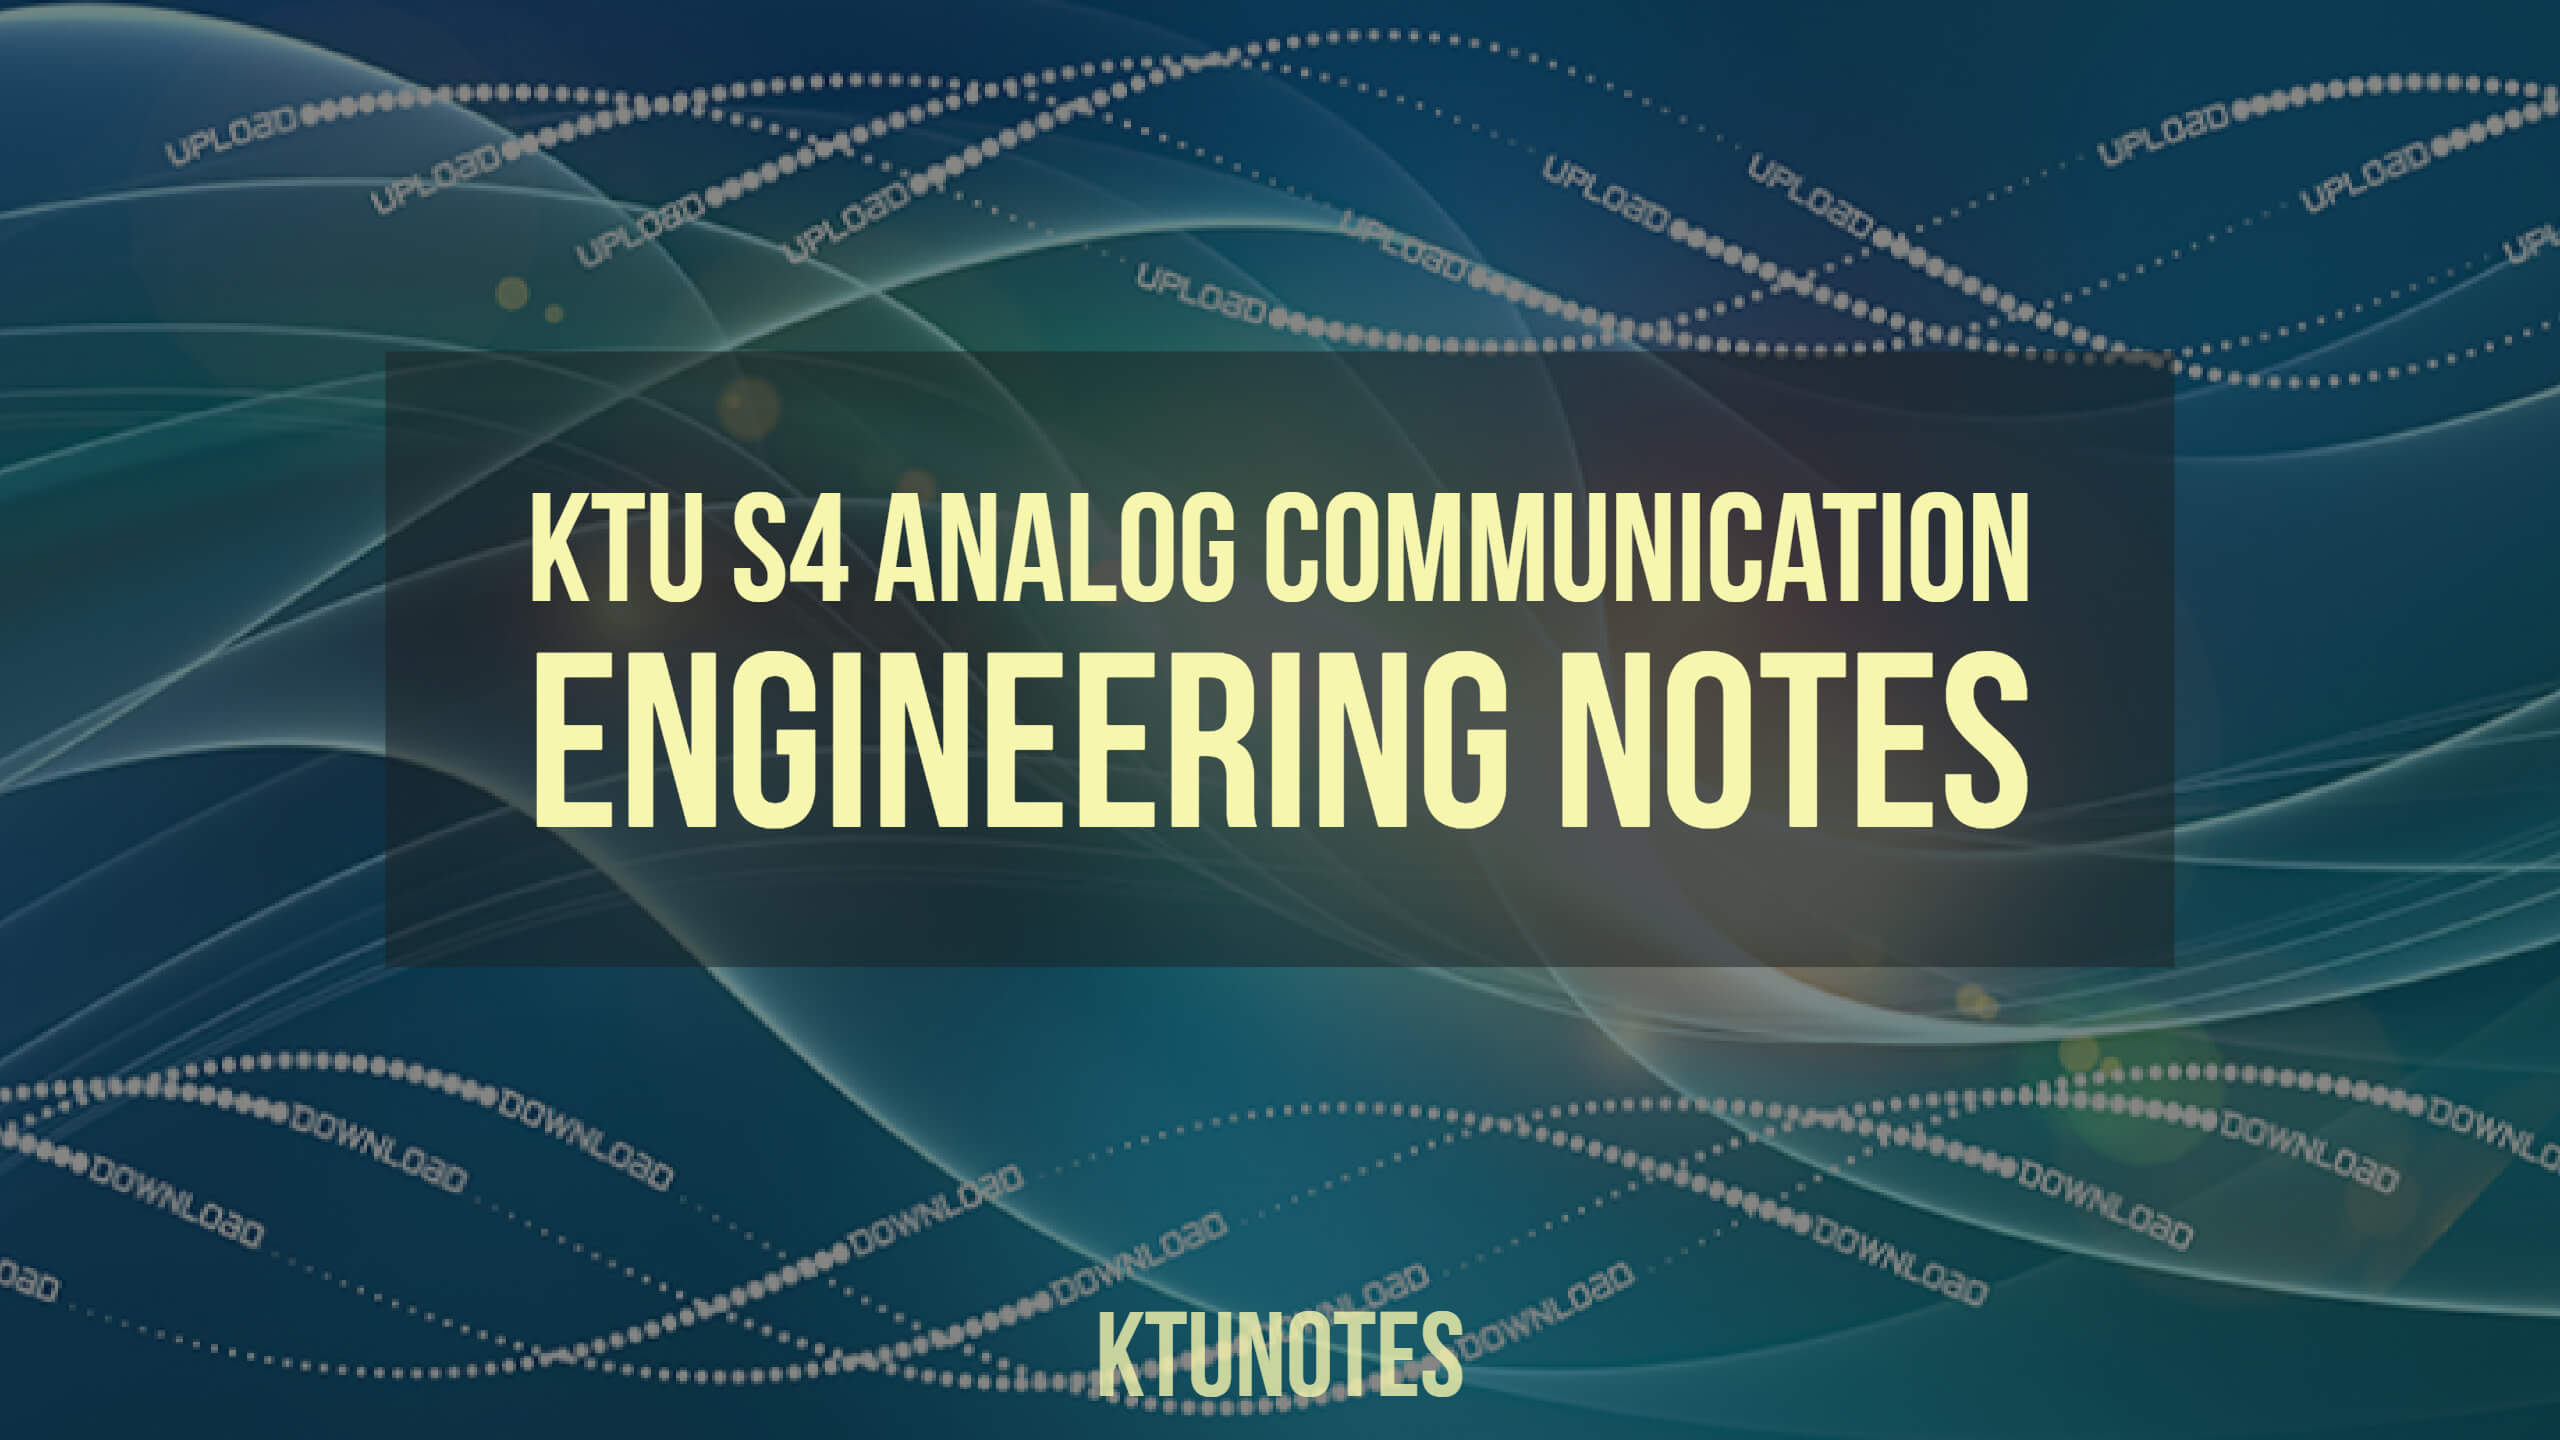 KTU S4 Analog Communication Engineering Notes